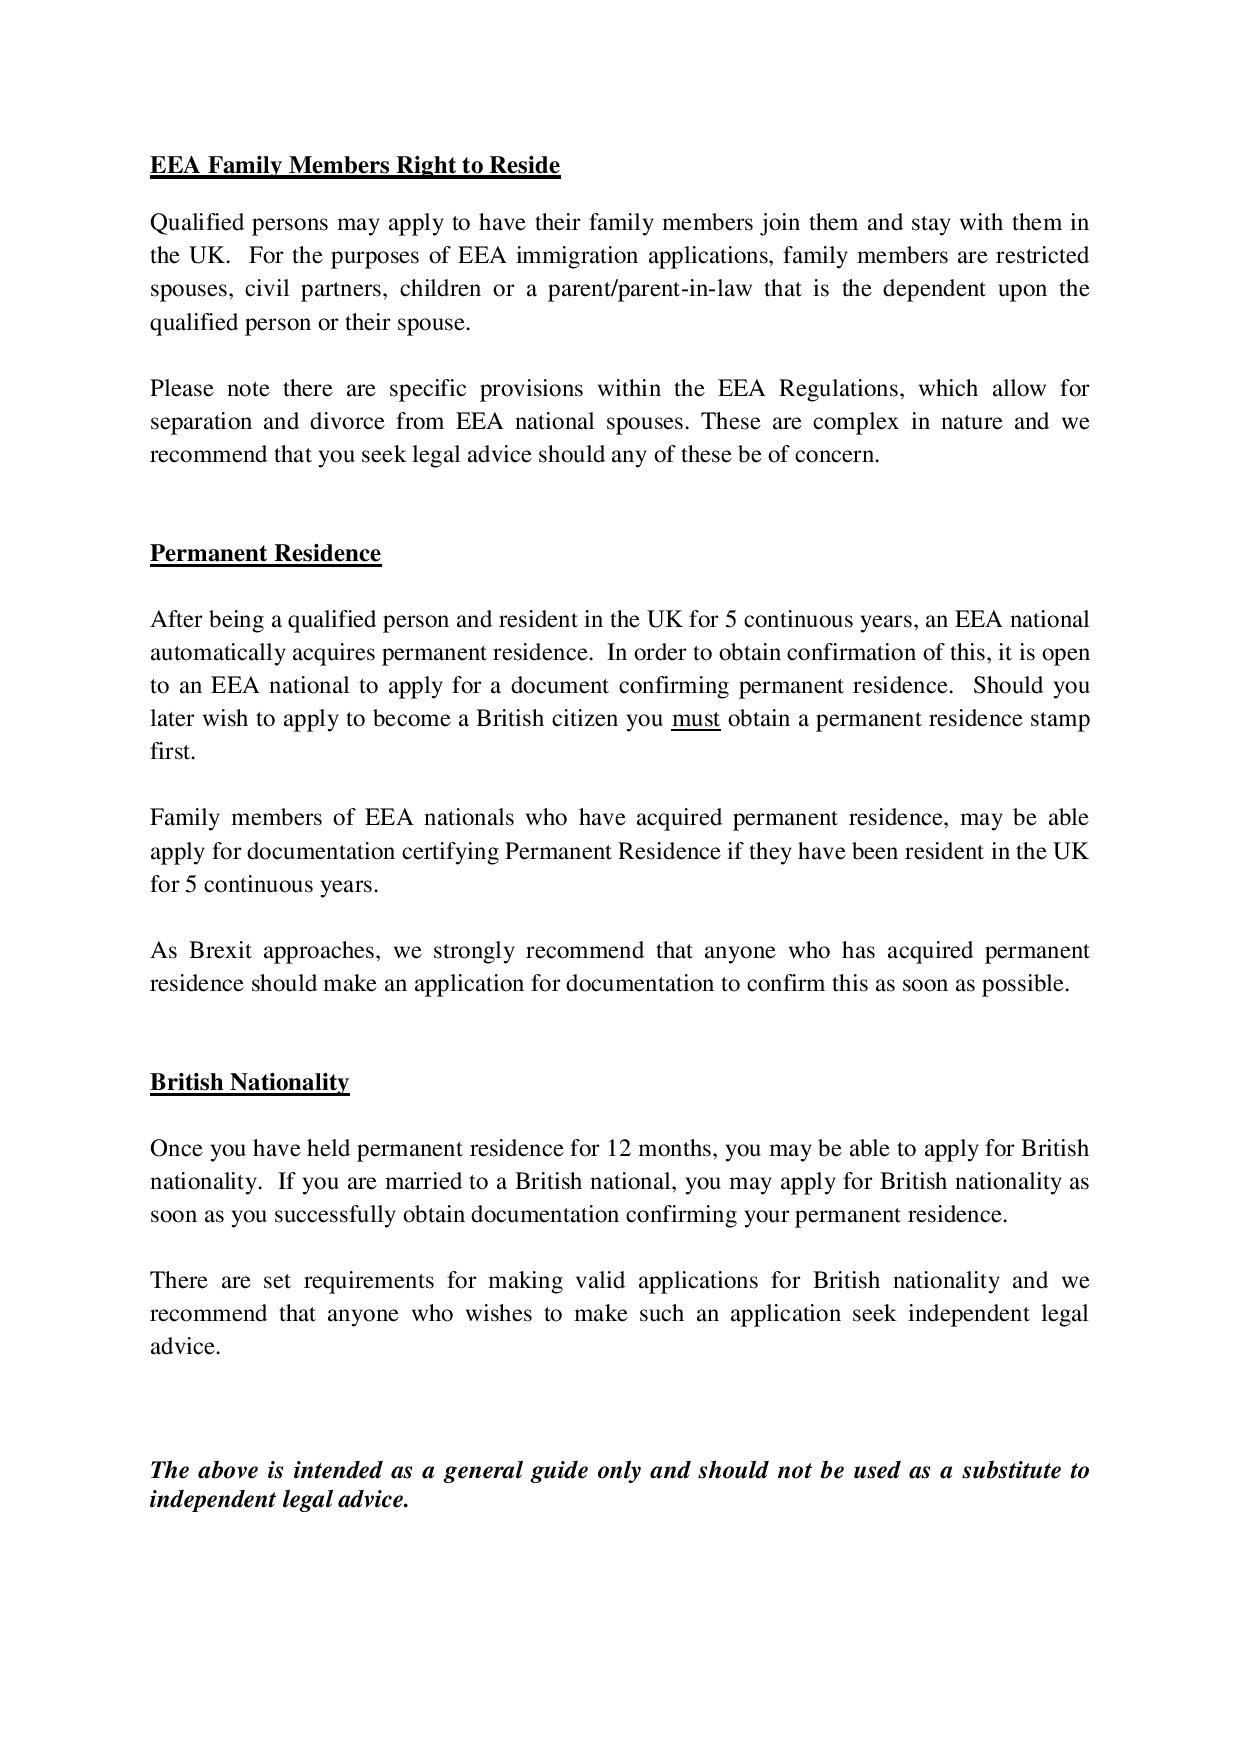 170315_LKB_A_Brief_Guide_to_the_Rights_of_EEA_Nationals-page-002.jpg